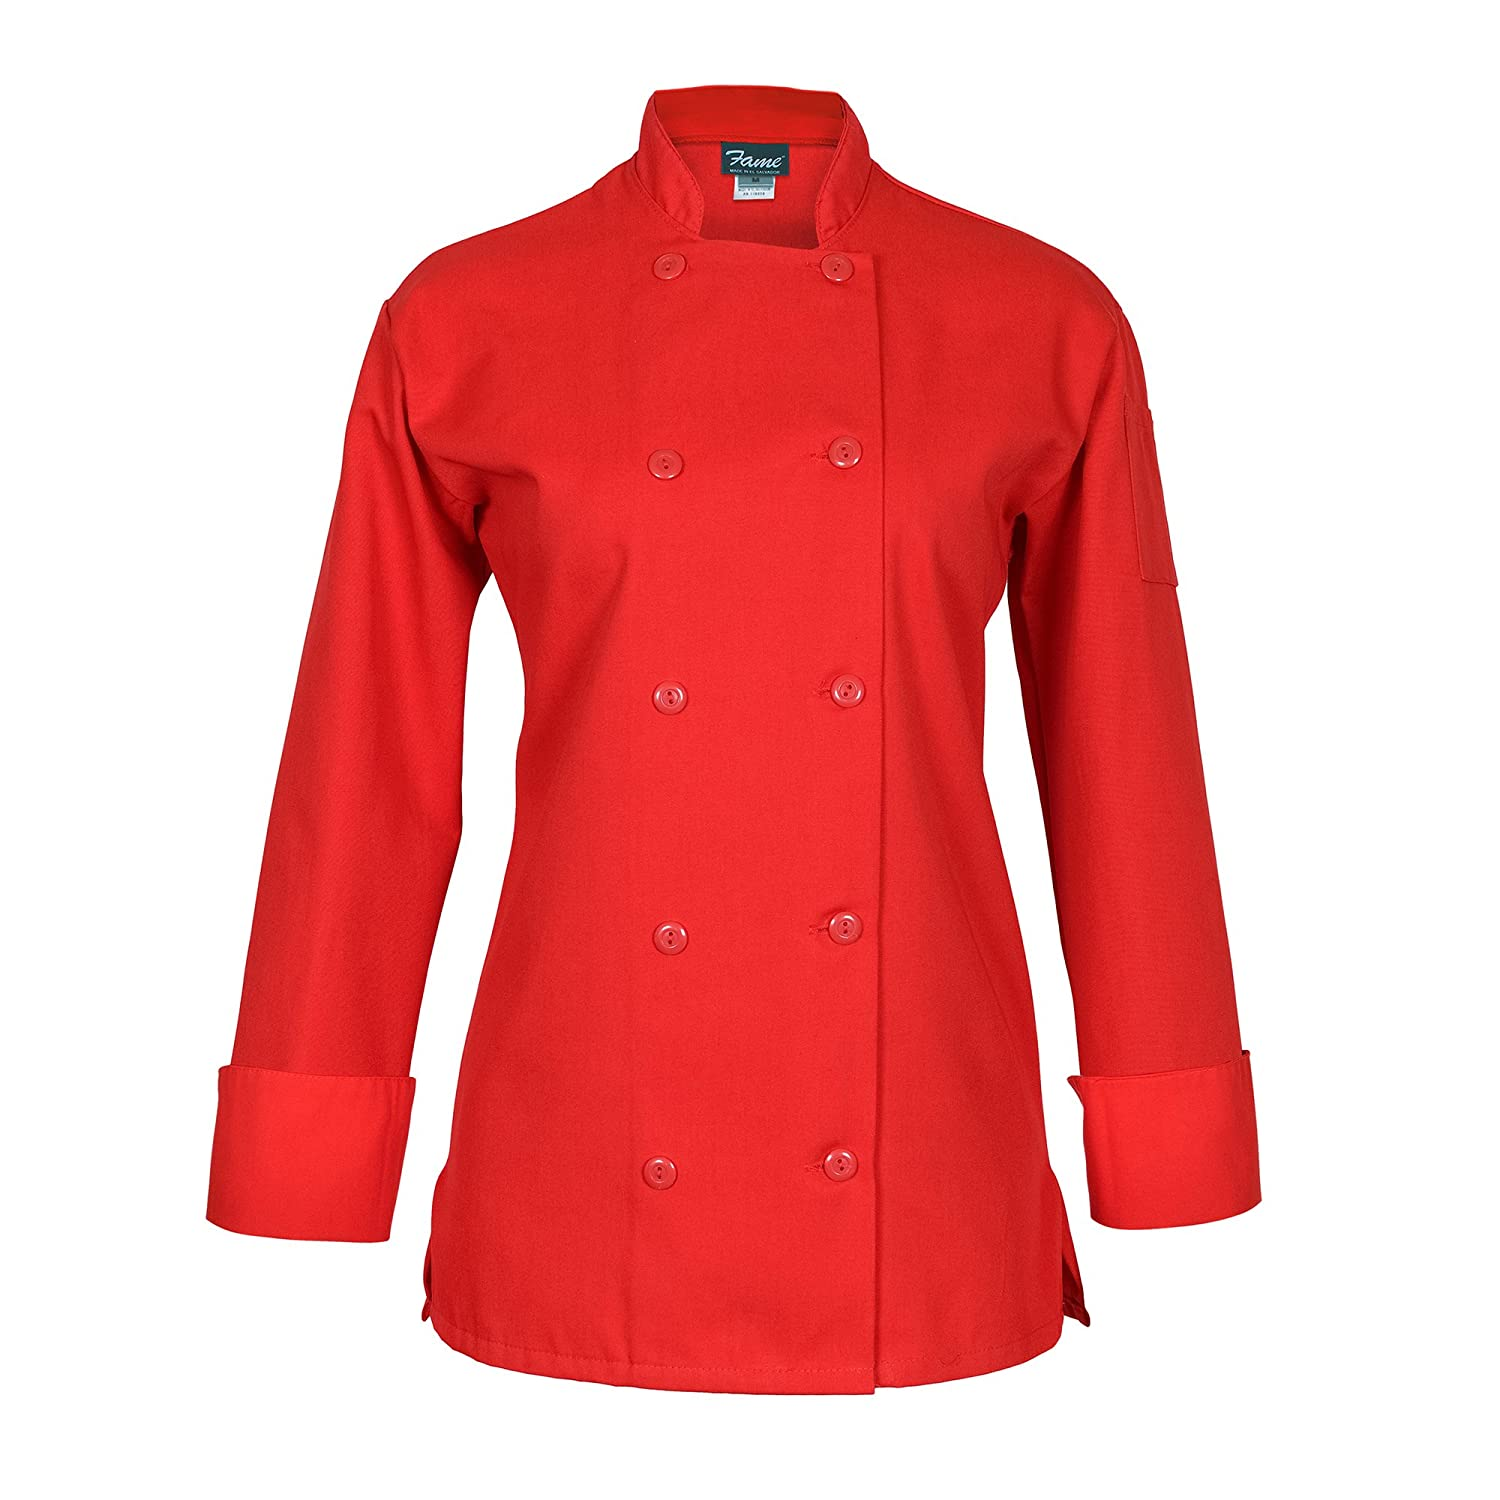 Fame Women's Long Sleeve Chef Coat